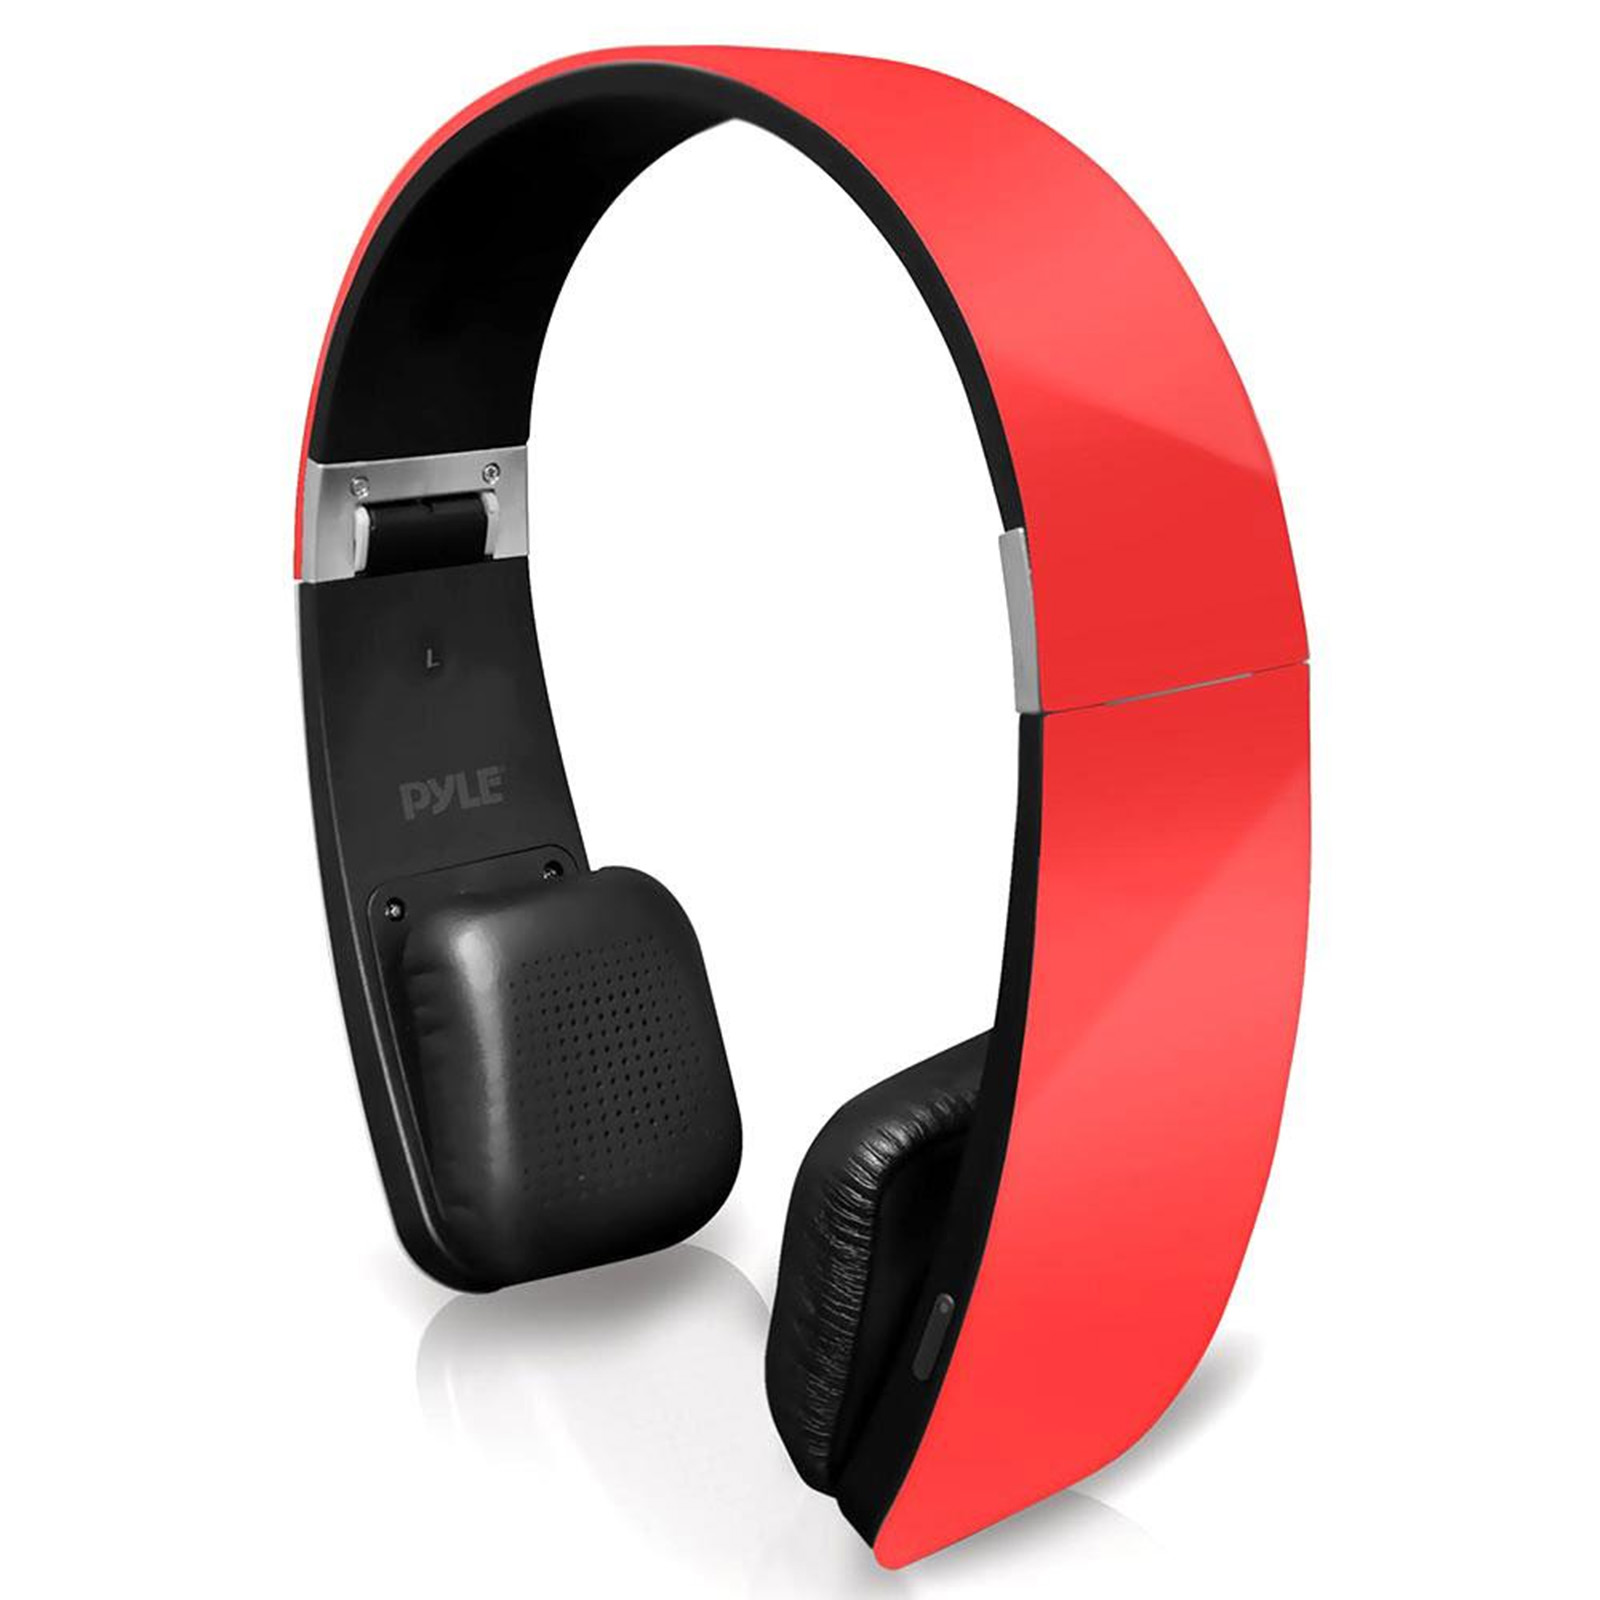 Pyle Sound 6 BT 2-in-1 Stereo Headphones with Built-in Mic for Call Answering and Easy-Touch Controls - Red Color